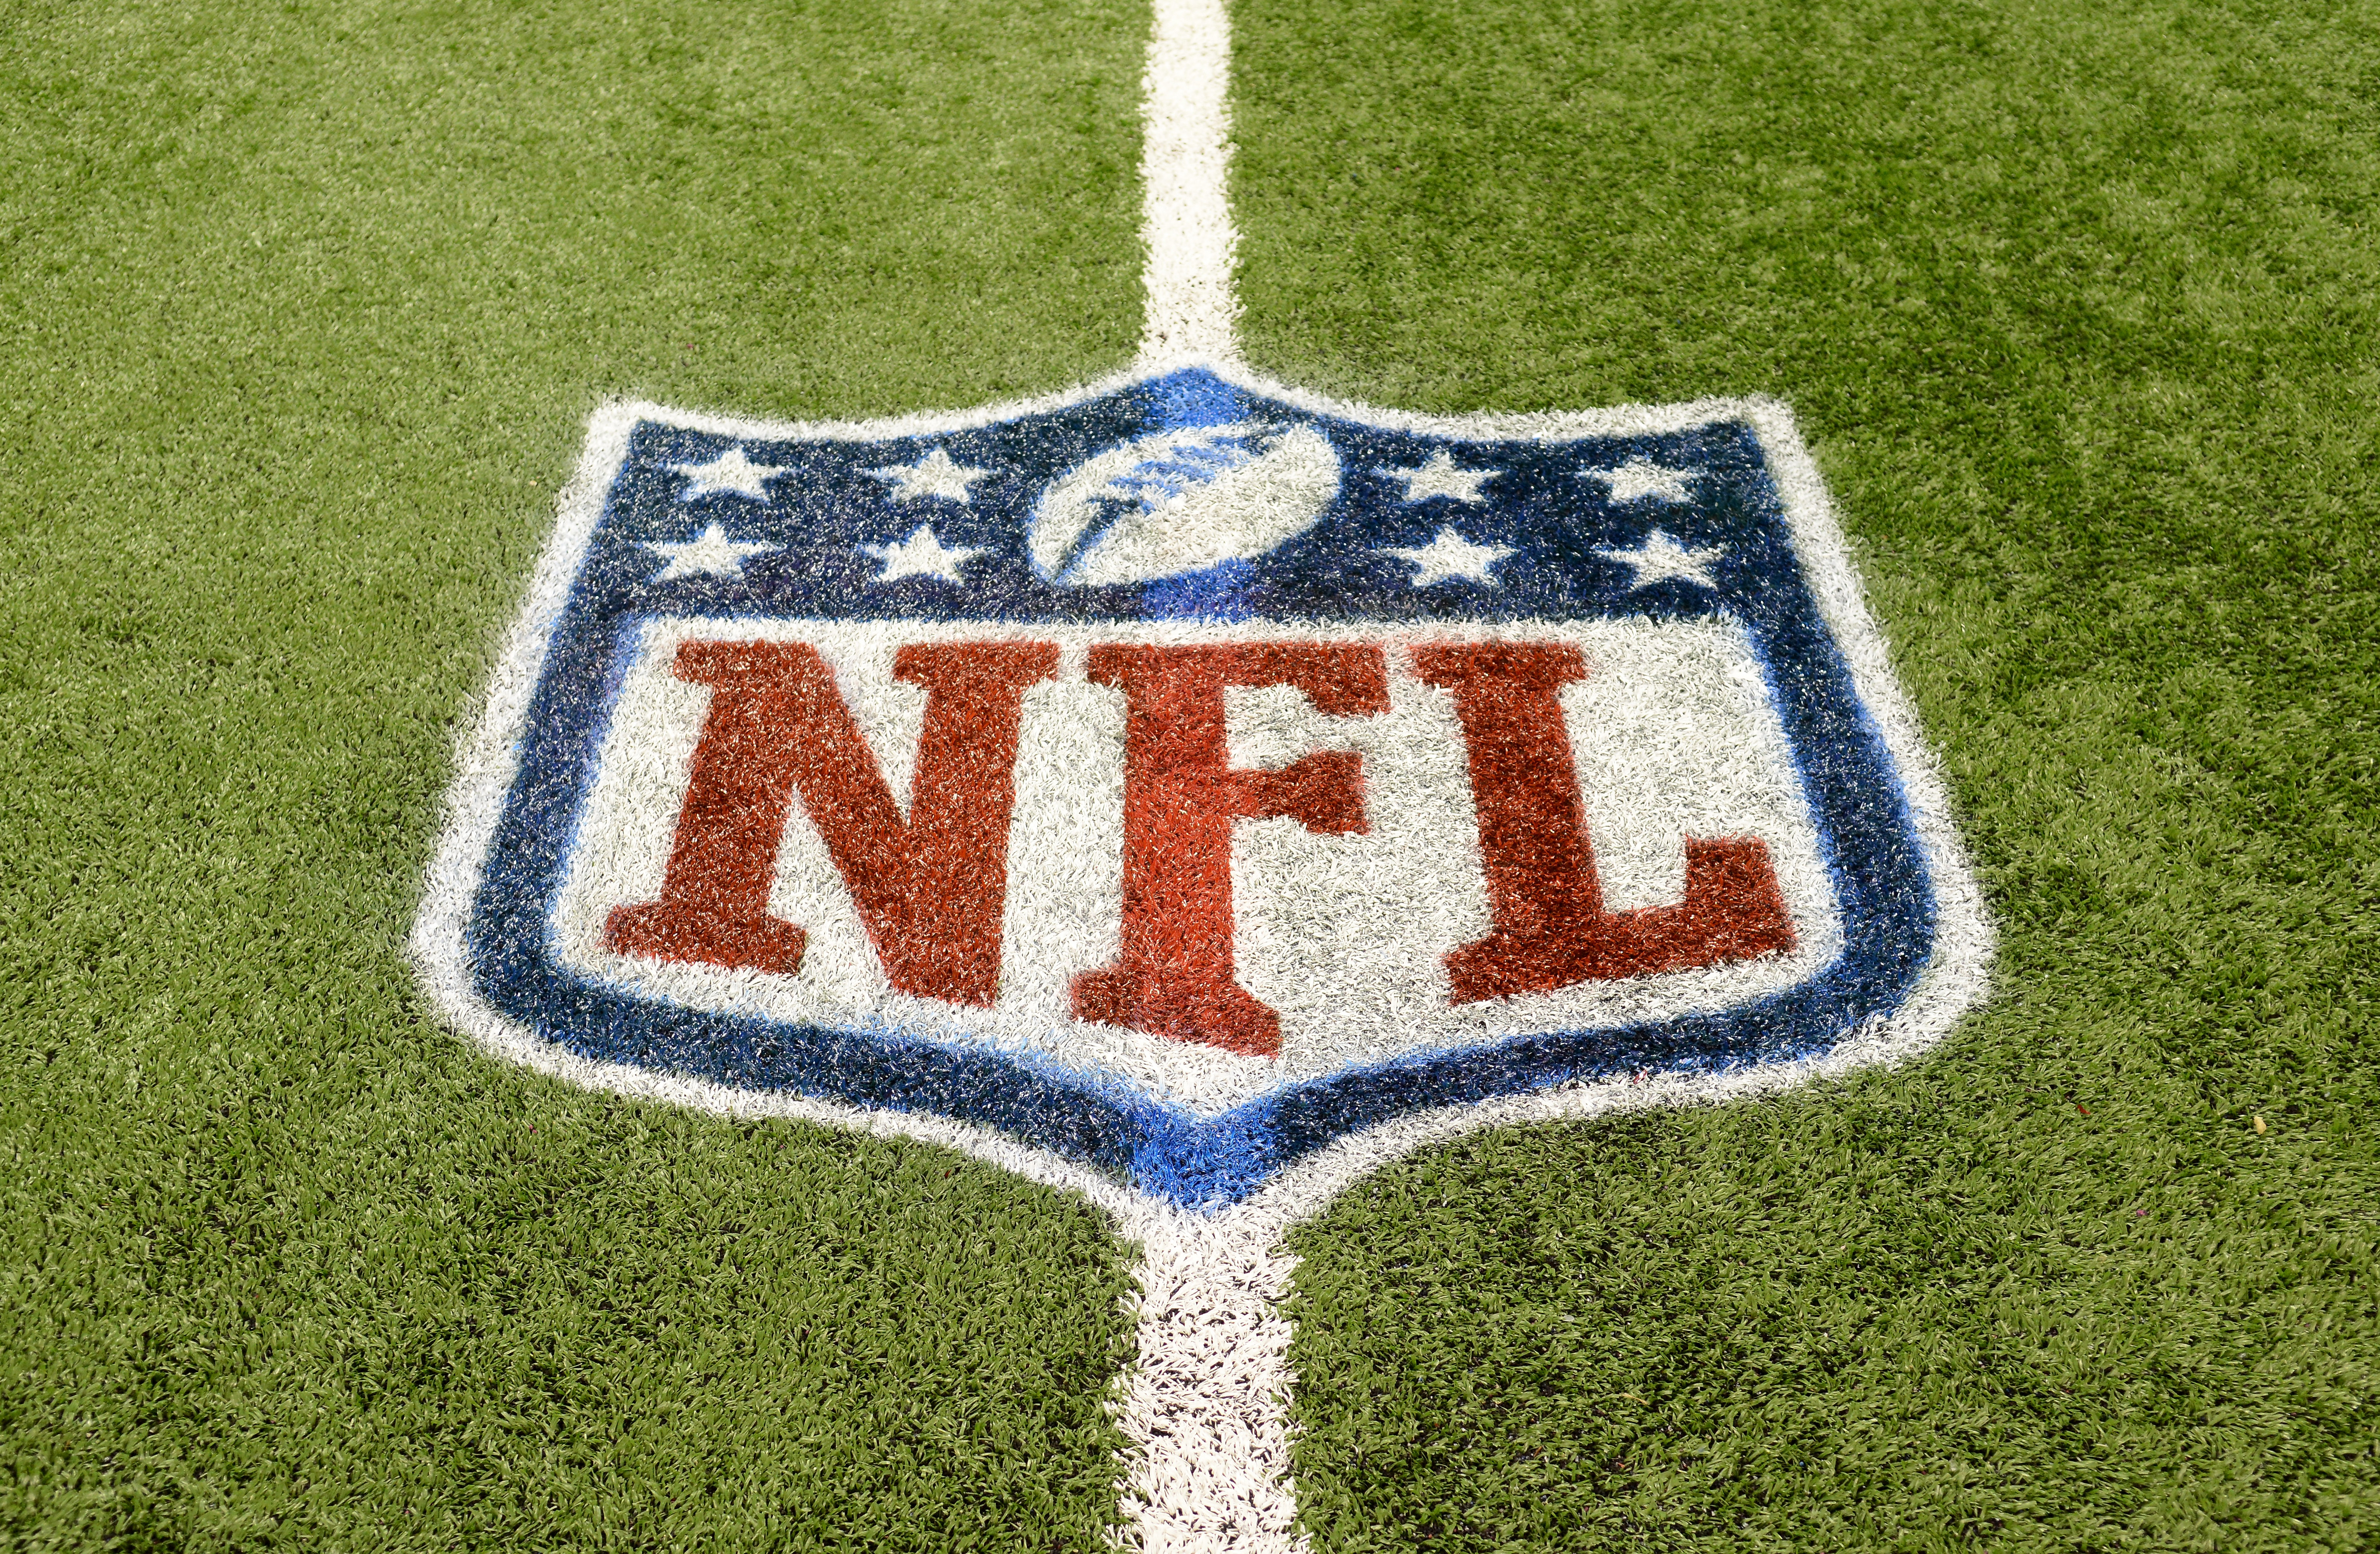 An NFL shield logo is painted on the field before the game between the Detroit Lions and the Tampa Bay Buccaneers in Detroit on Nov. 24, 2013.